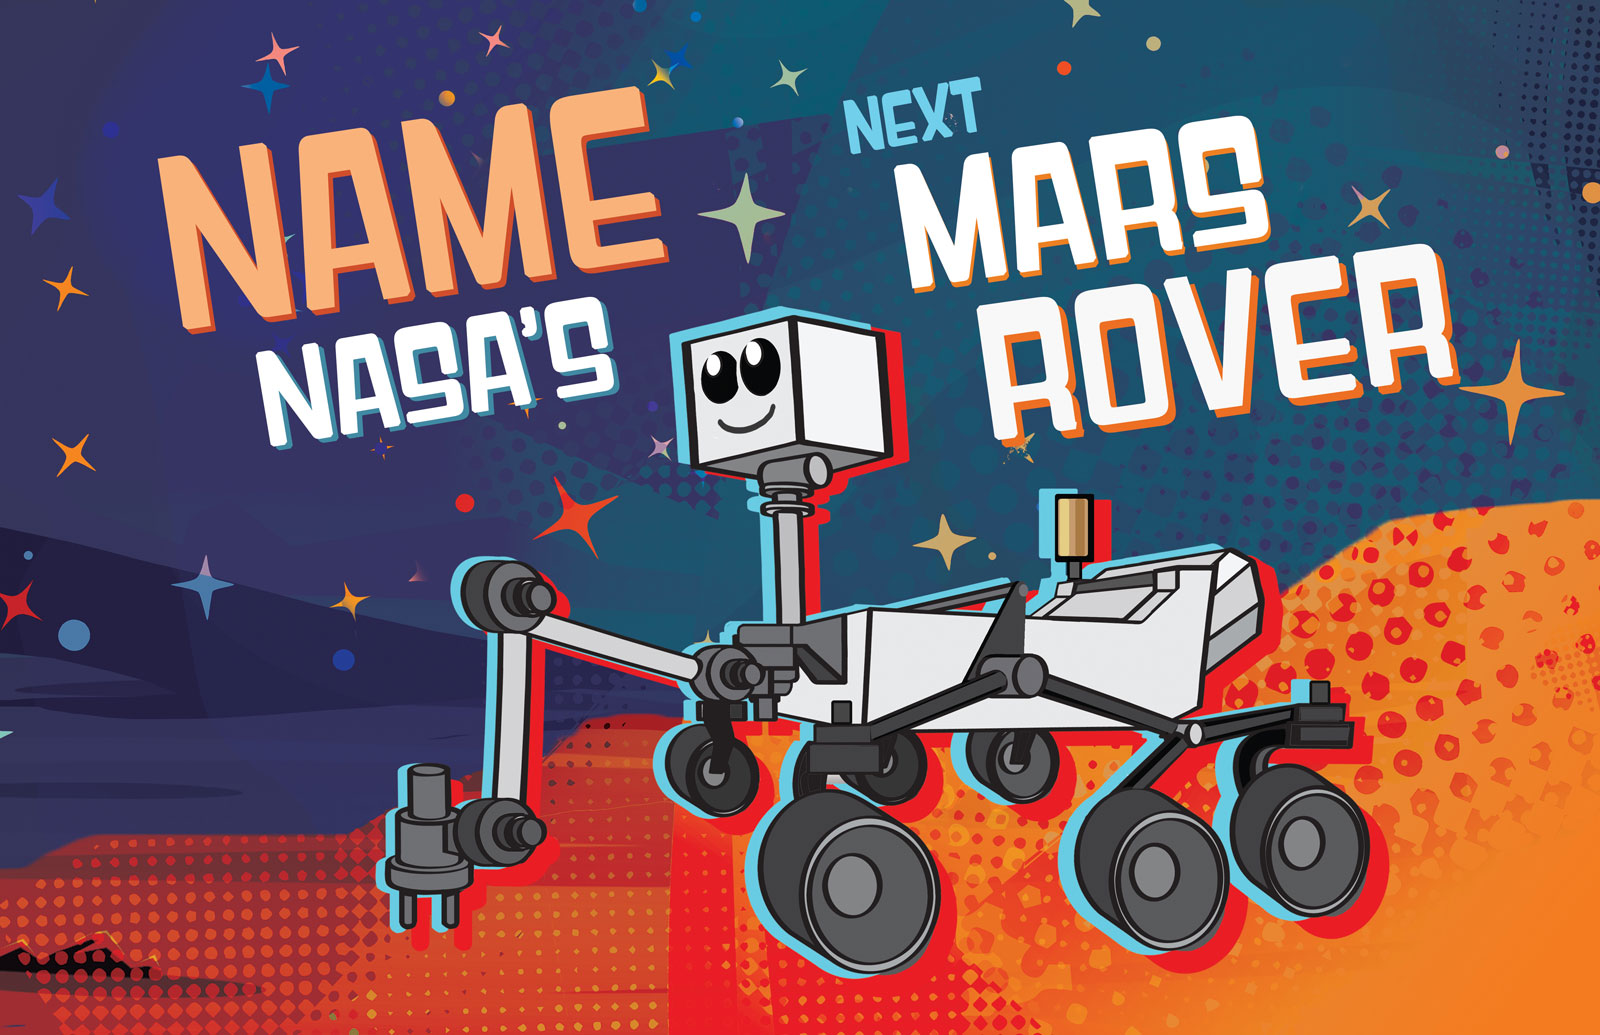 NASA Invites Students to Name Next Mars Rover